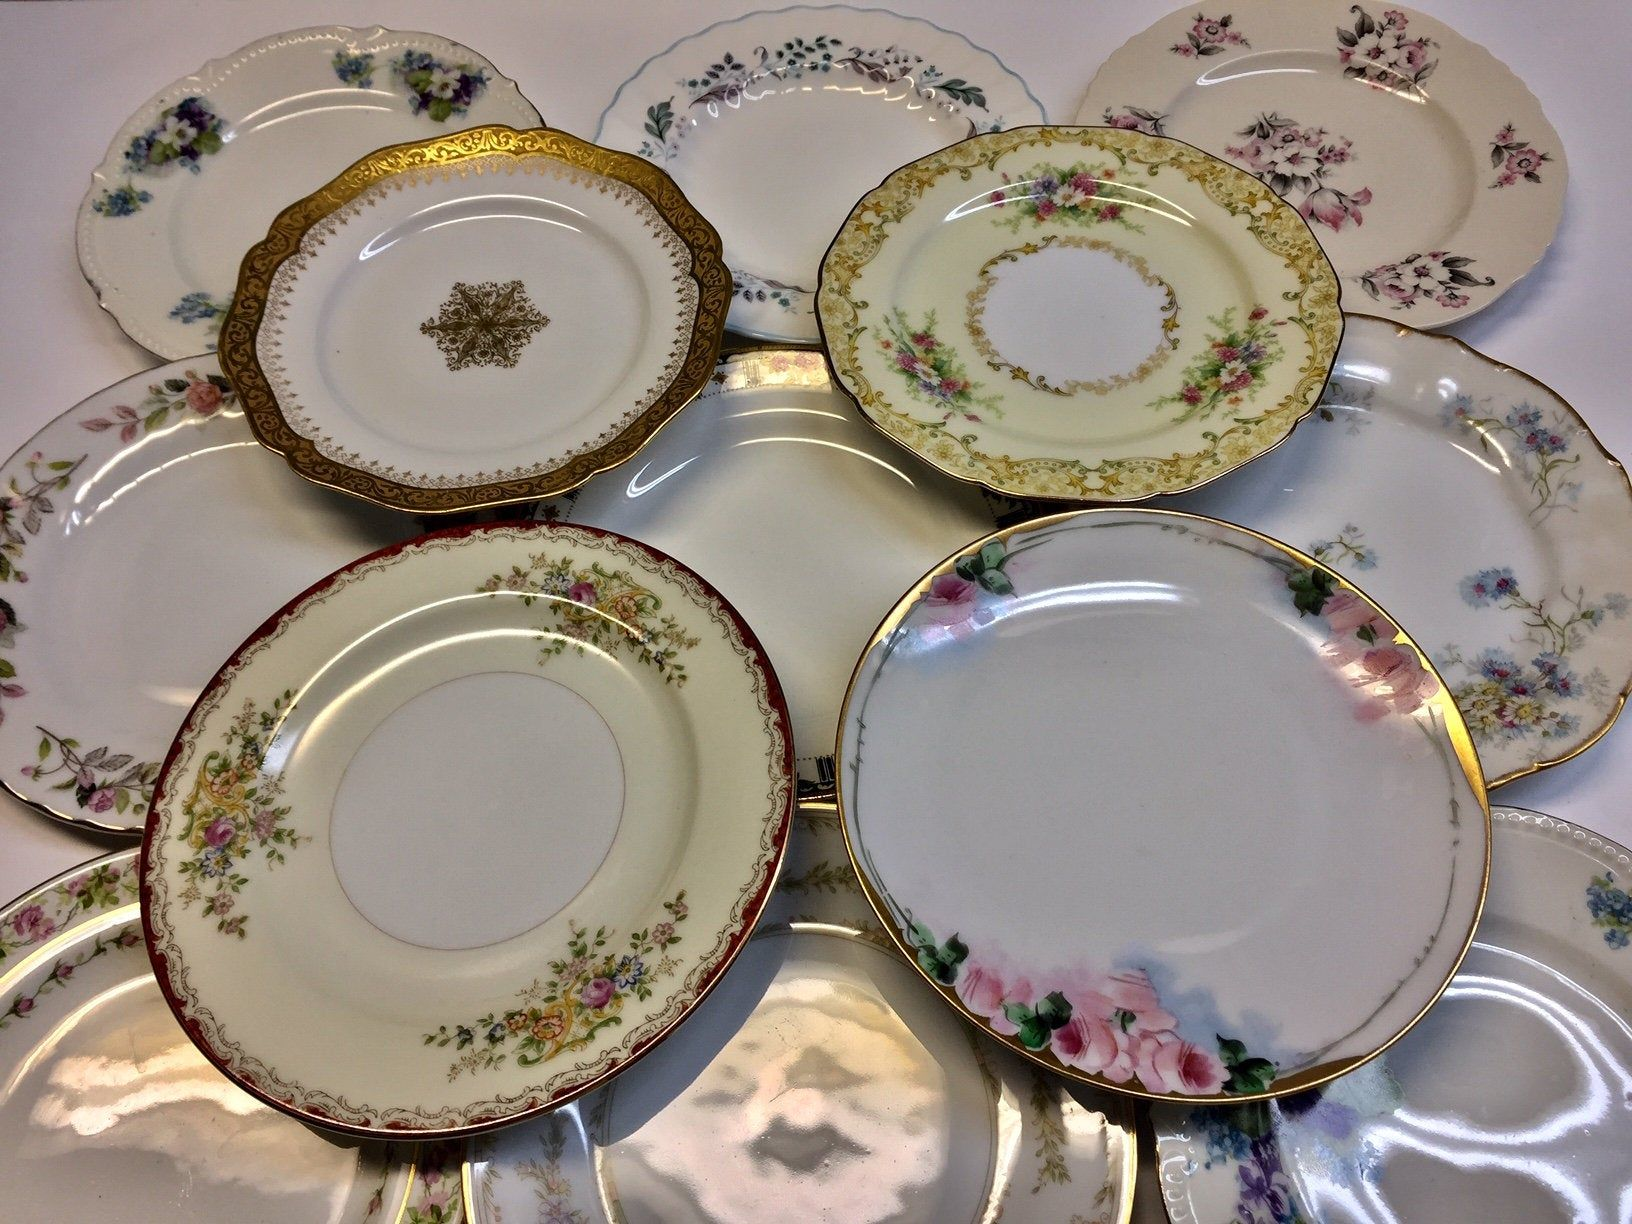 Vintage set of 10 Lovely Bread Dessert Plates Holiday Dining Entertaining 1920/'s to the 1960/'s Eclectic Tea Party Mix and Match Mismatched